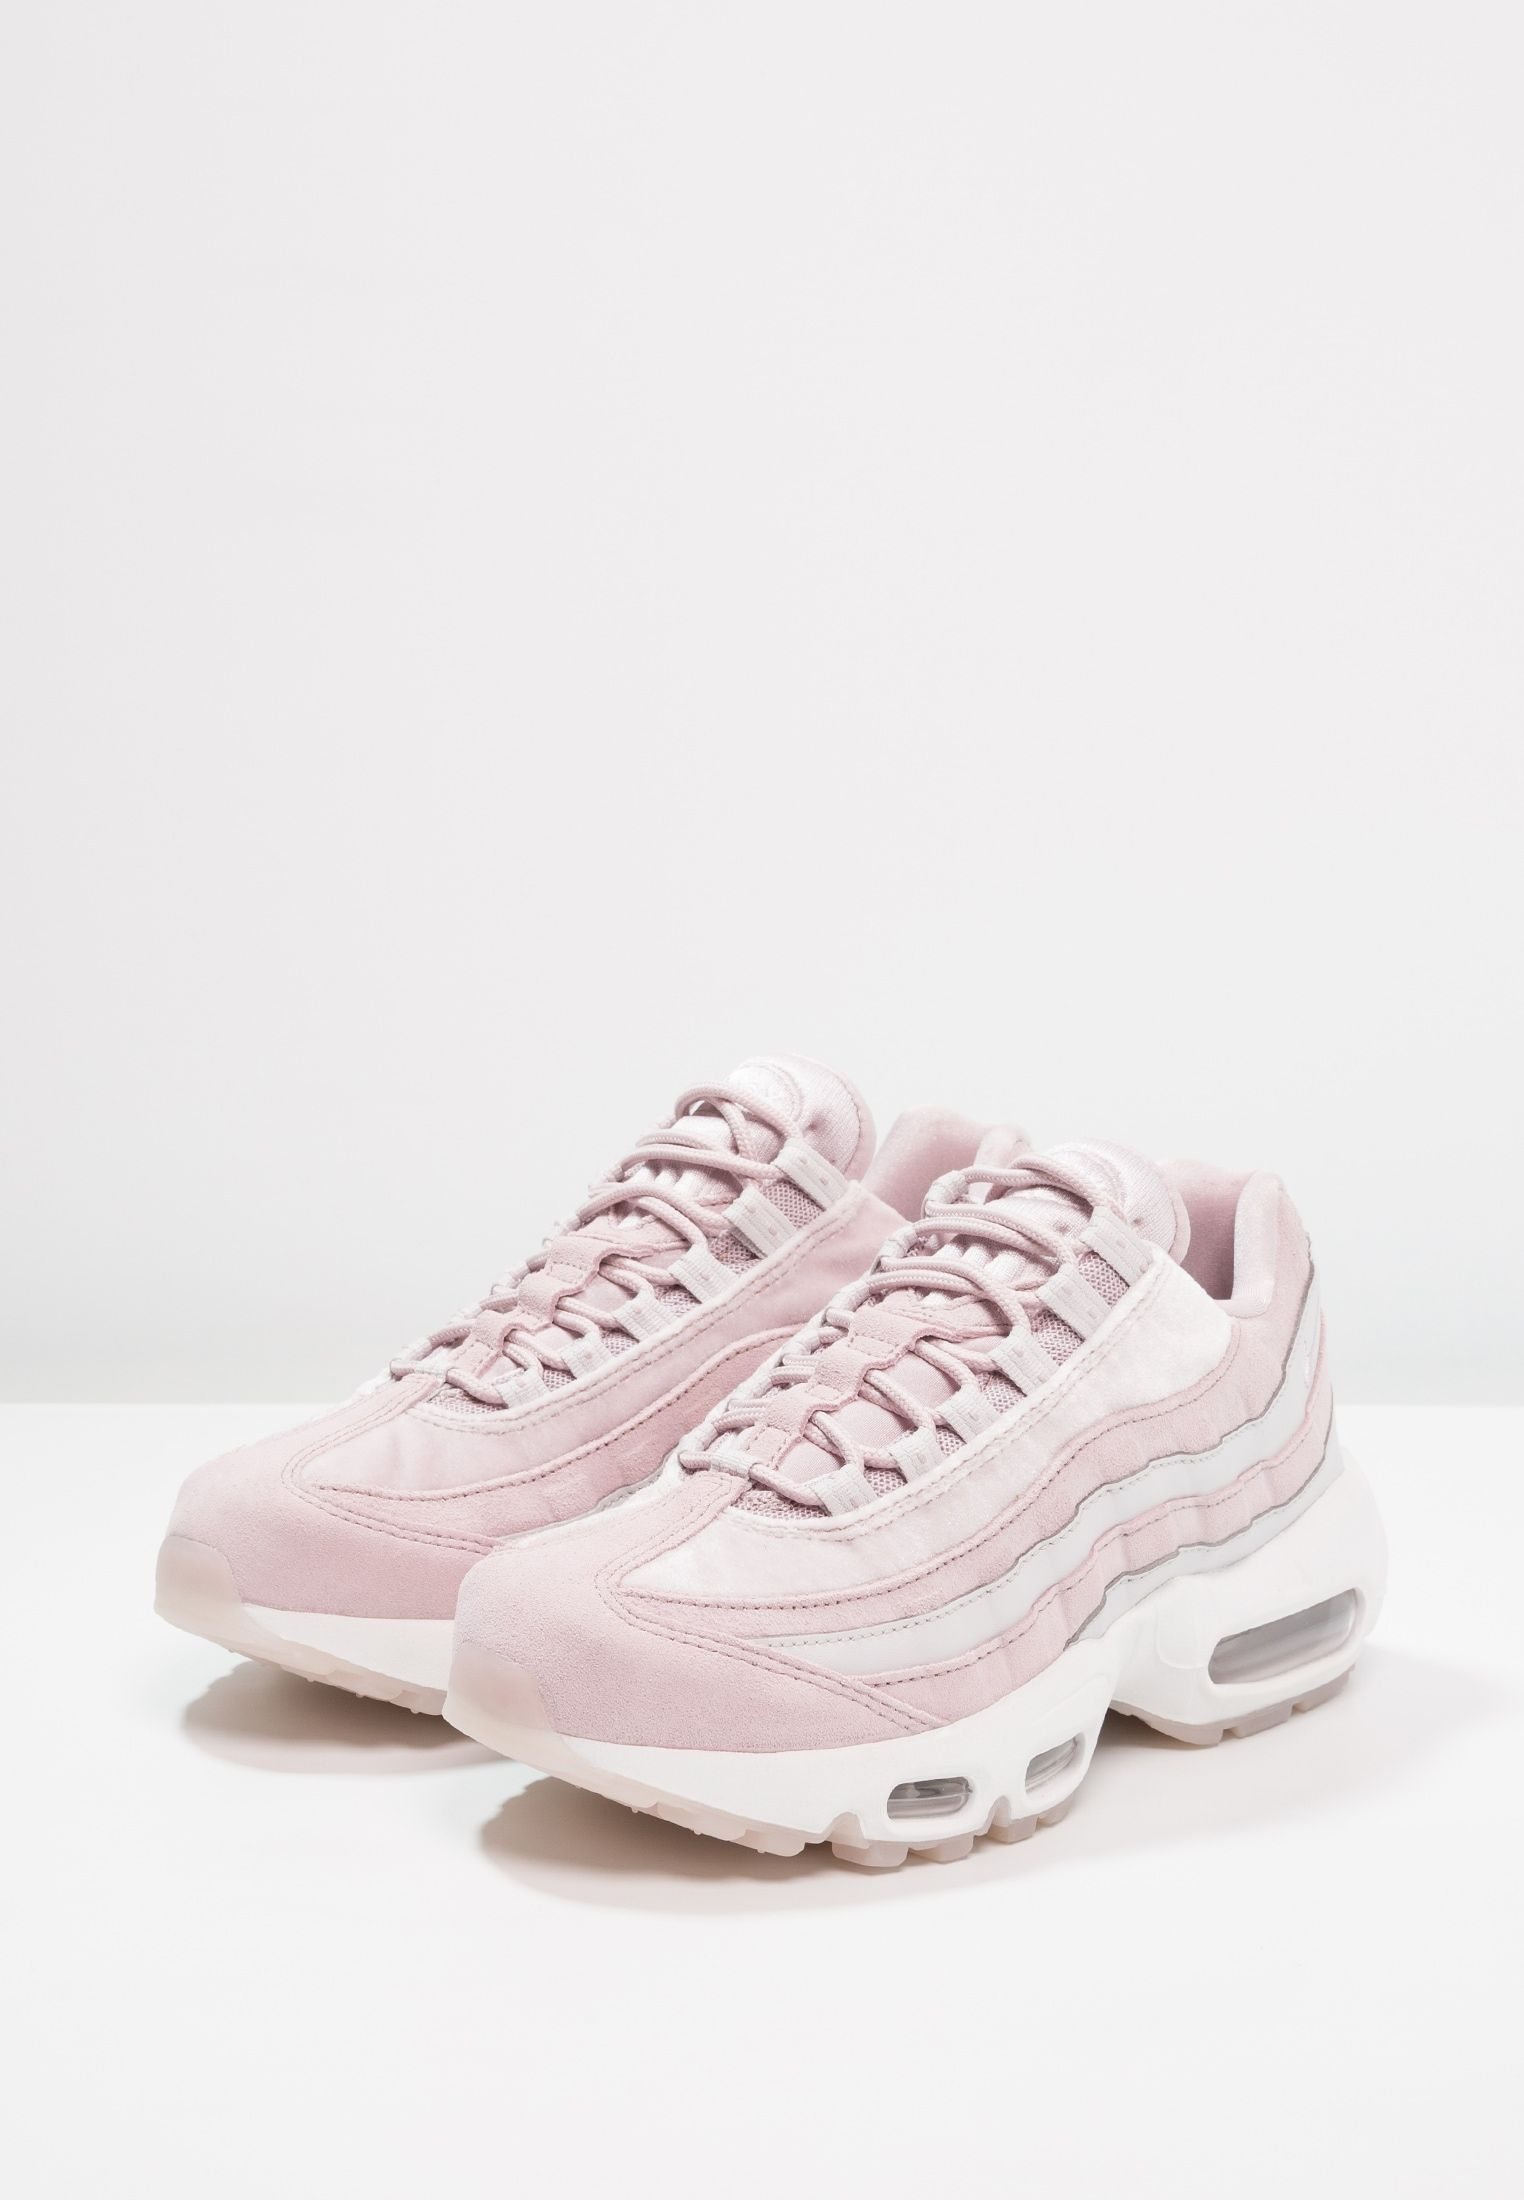 wholesale dealer 243e5 4fbbb Nike Sportswear AIR MAX 95 - Sneakers - particle rose/vast grey/summit white